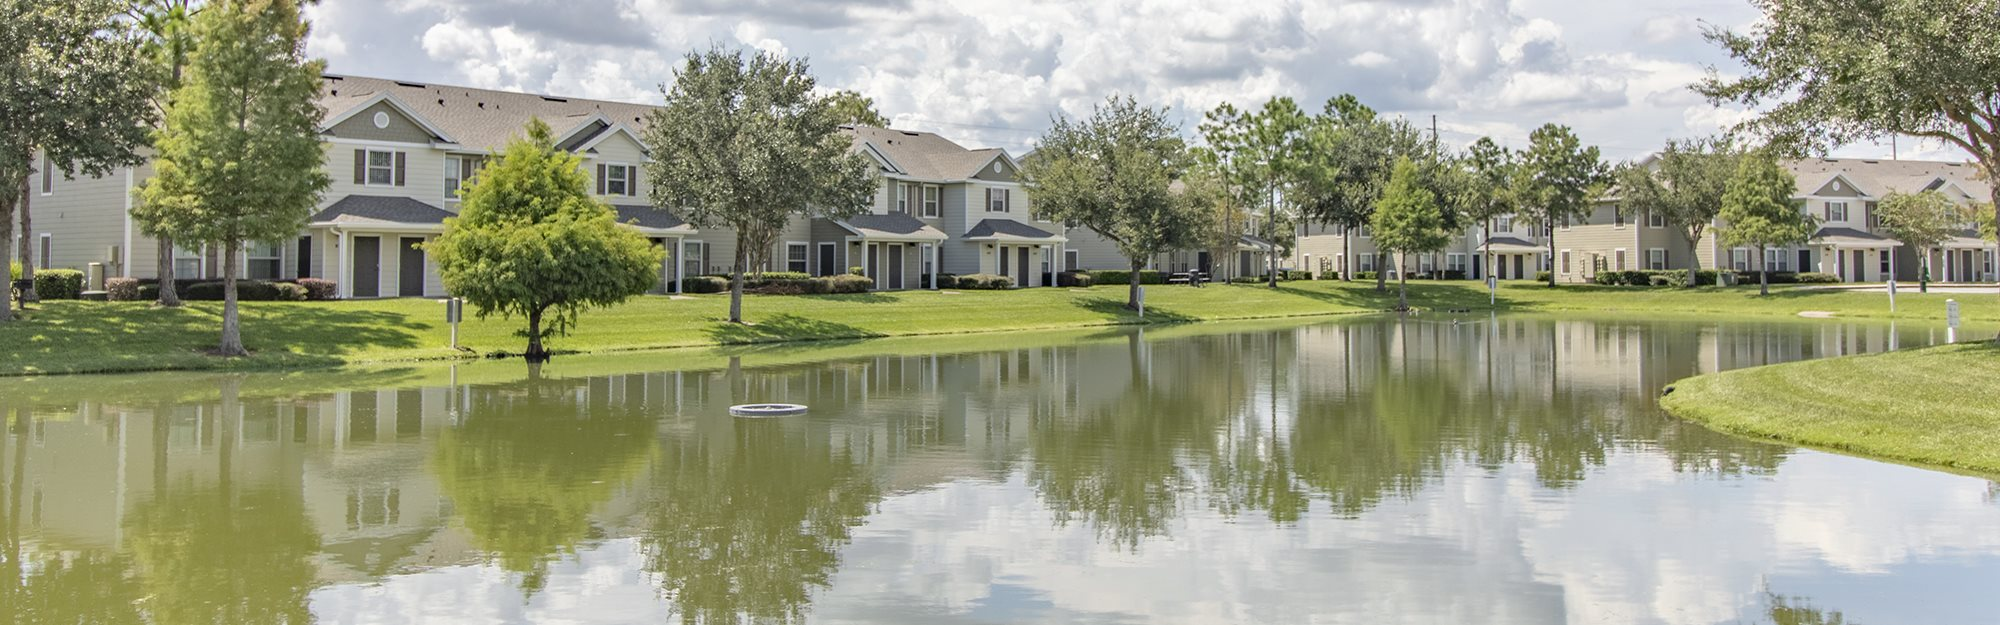 Belle Isle Apartments for rent in Orlando, FL. Make this community your new home or visit other Concord Rents communities at ConcordRents.com. Exterior with lake and buildings